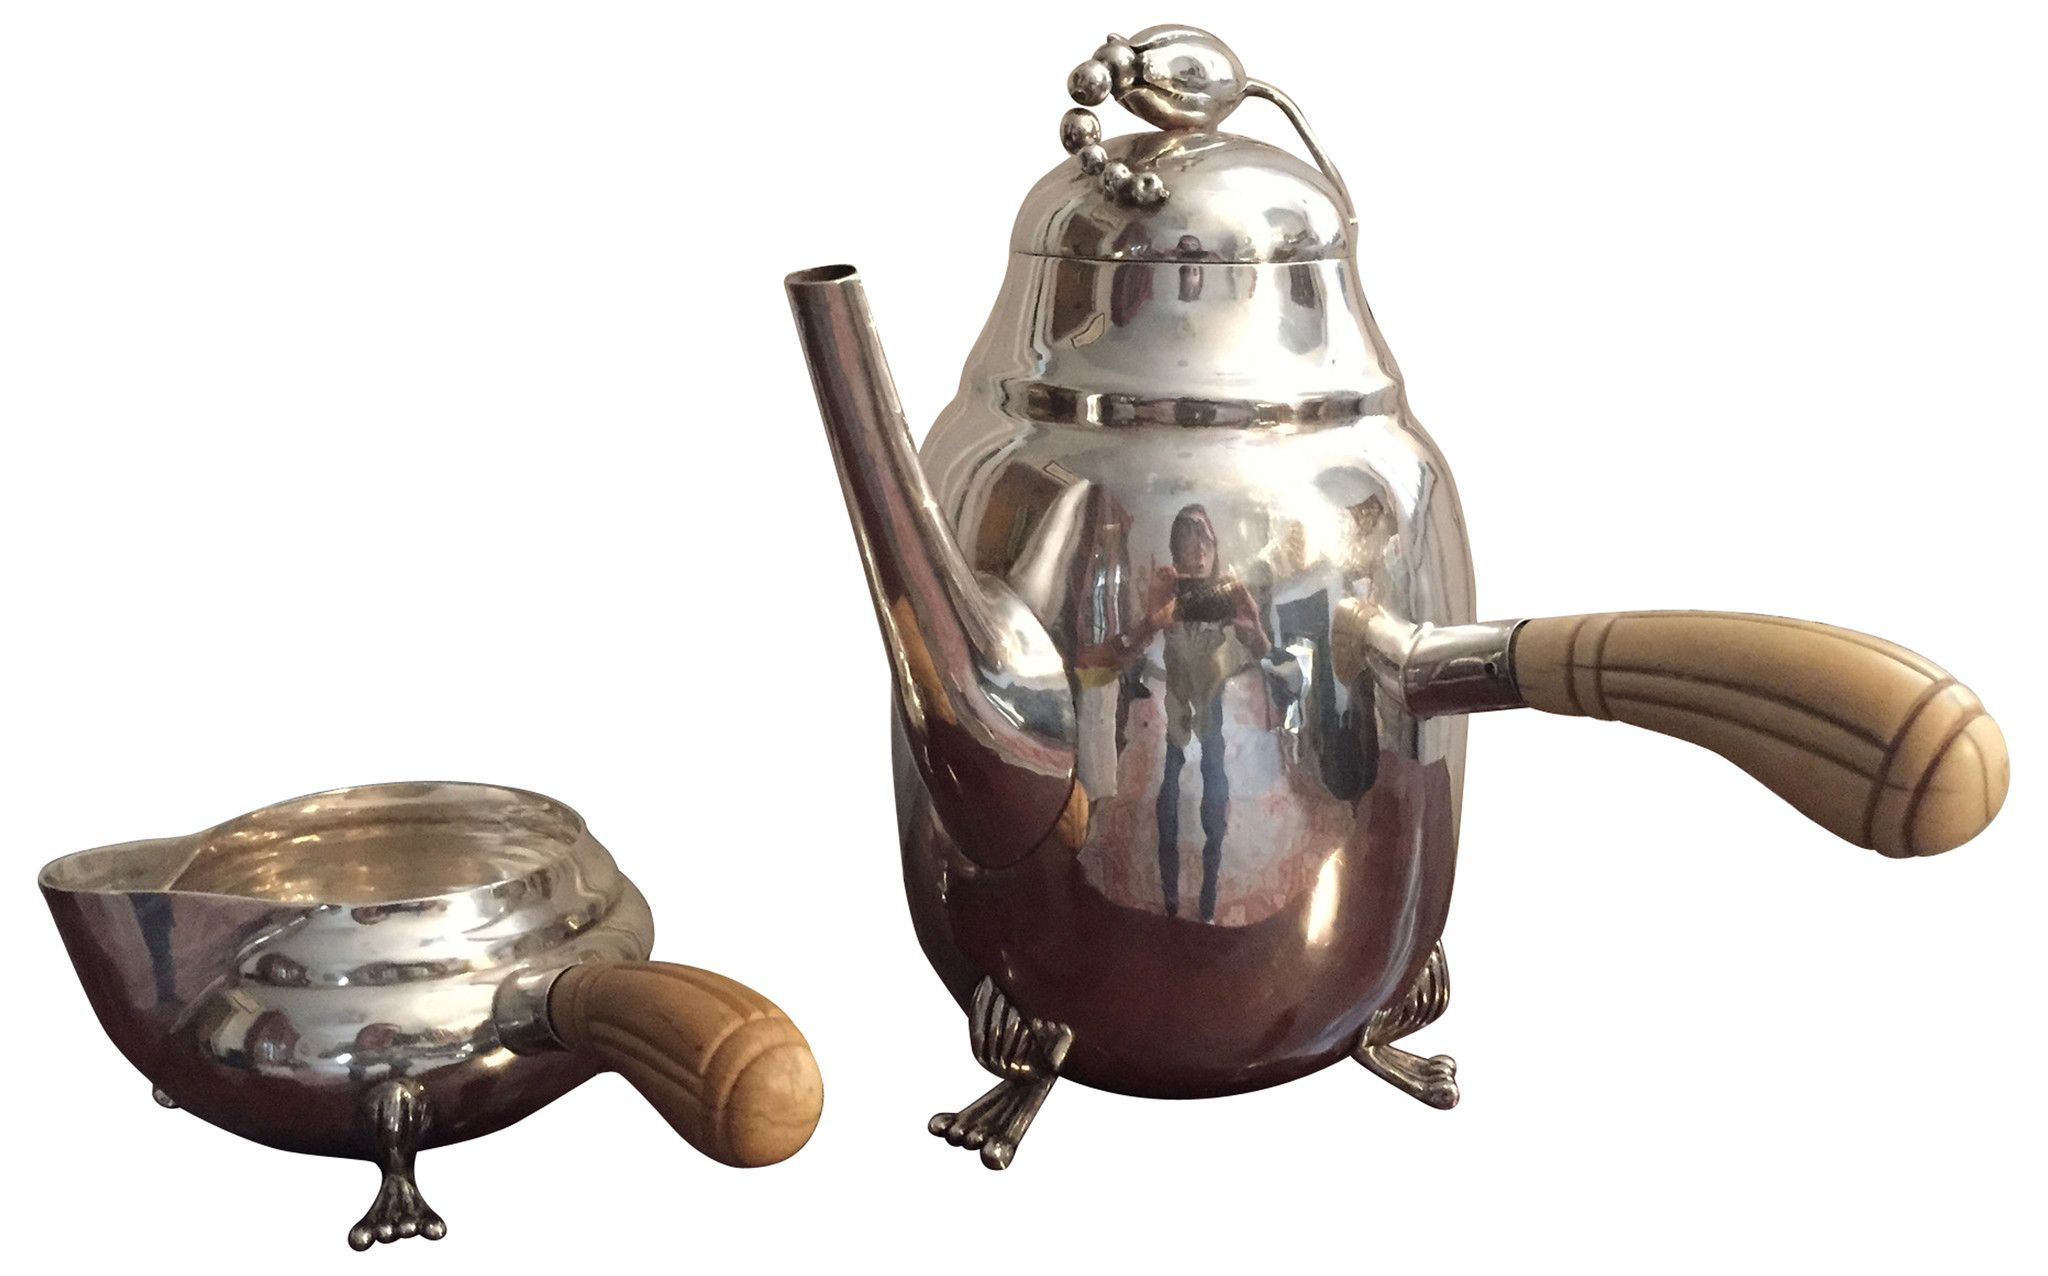 Georg Jensen Style Silver Coffee Pot and Creamer, American or Mexican, mid 20th century, after the Blossom pattern